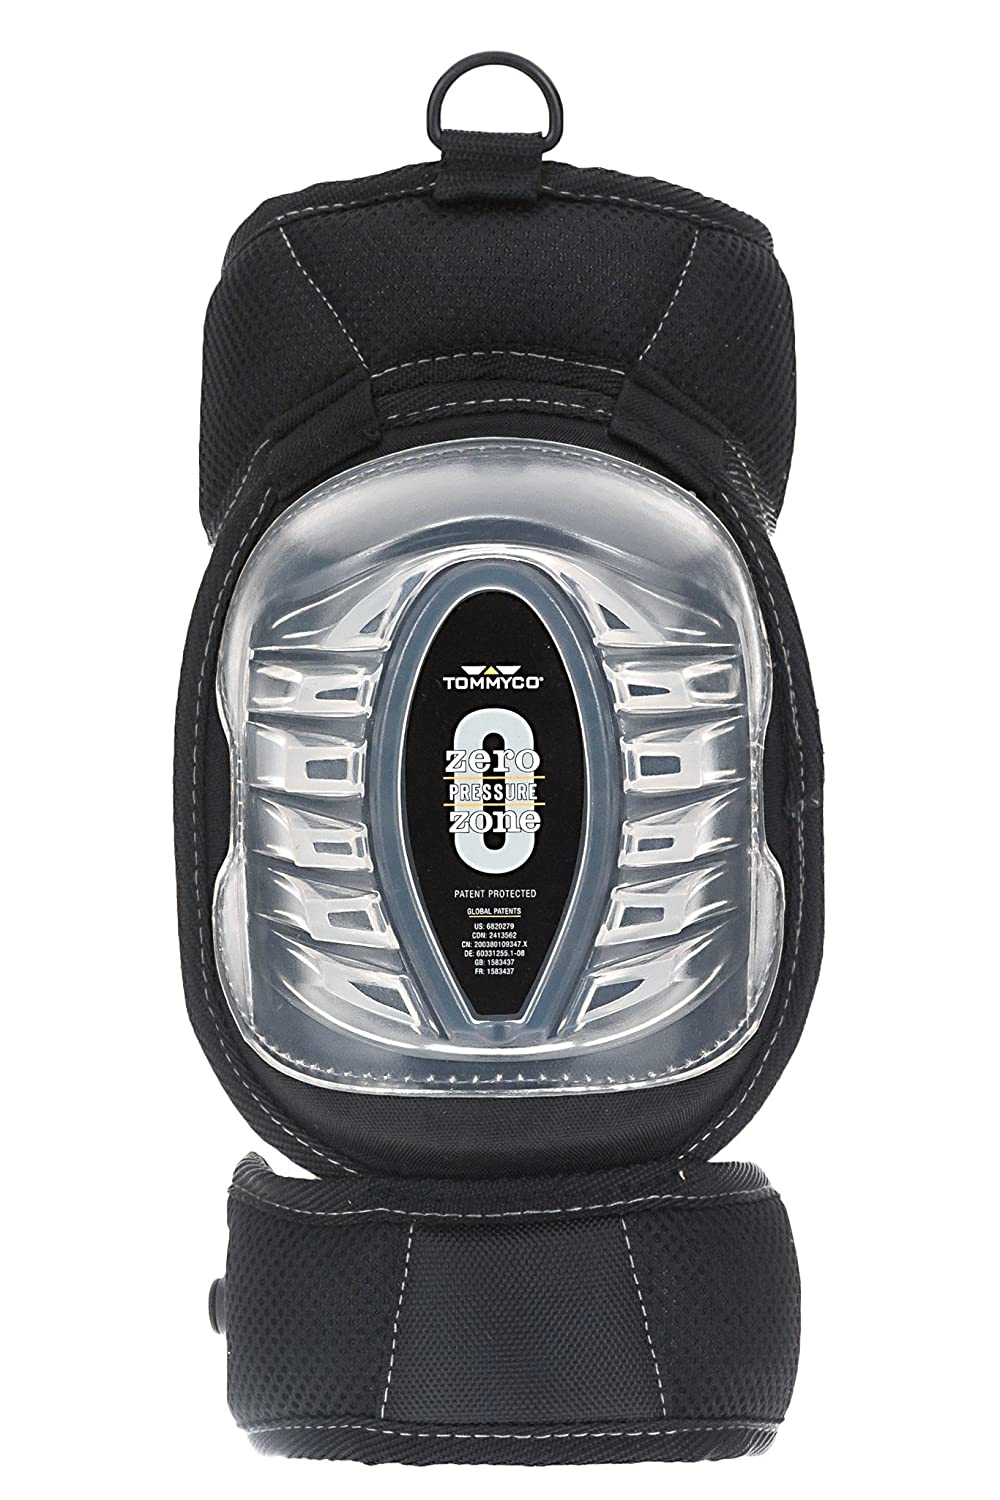 Top 6 Best Tommyco Knee Pads (2020 Reviews & Buying Guide) 5